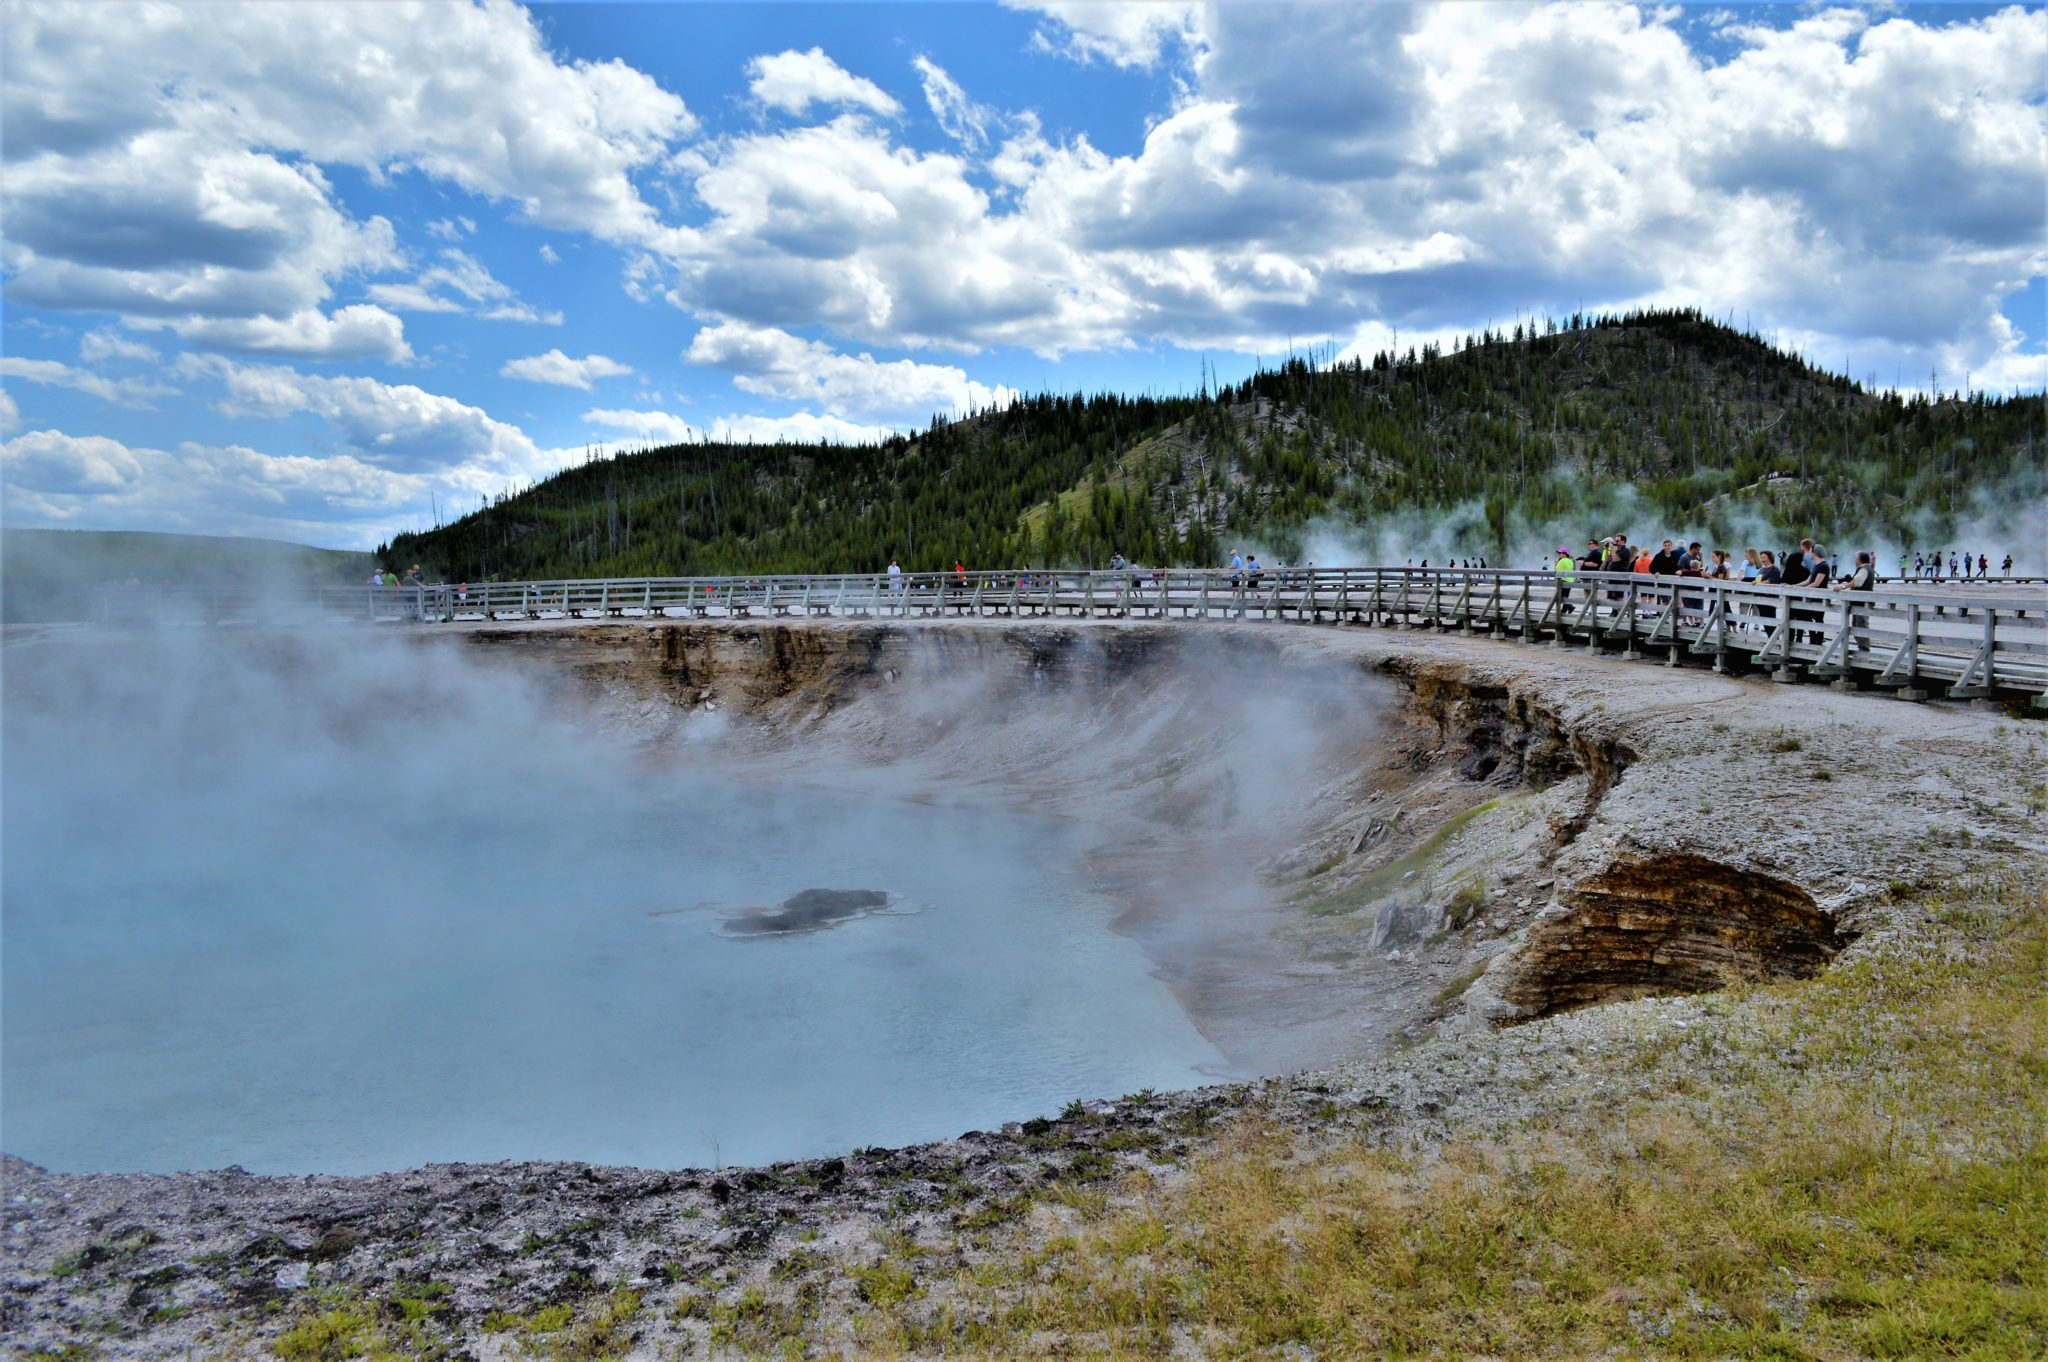 Geyser Crater, Yellowstone National Park, USa